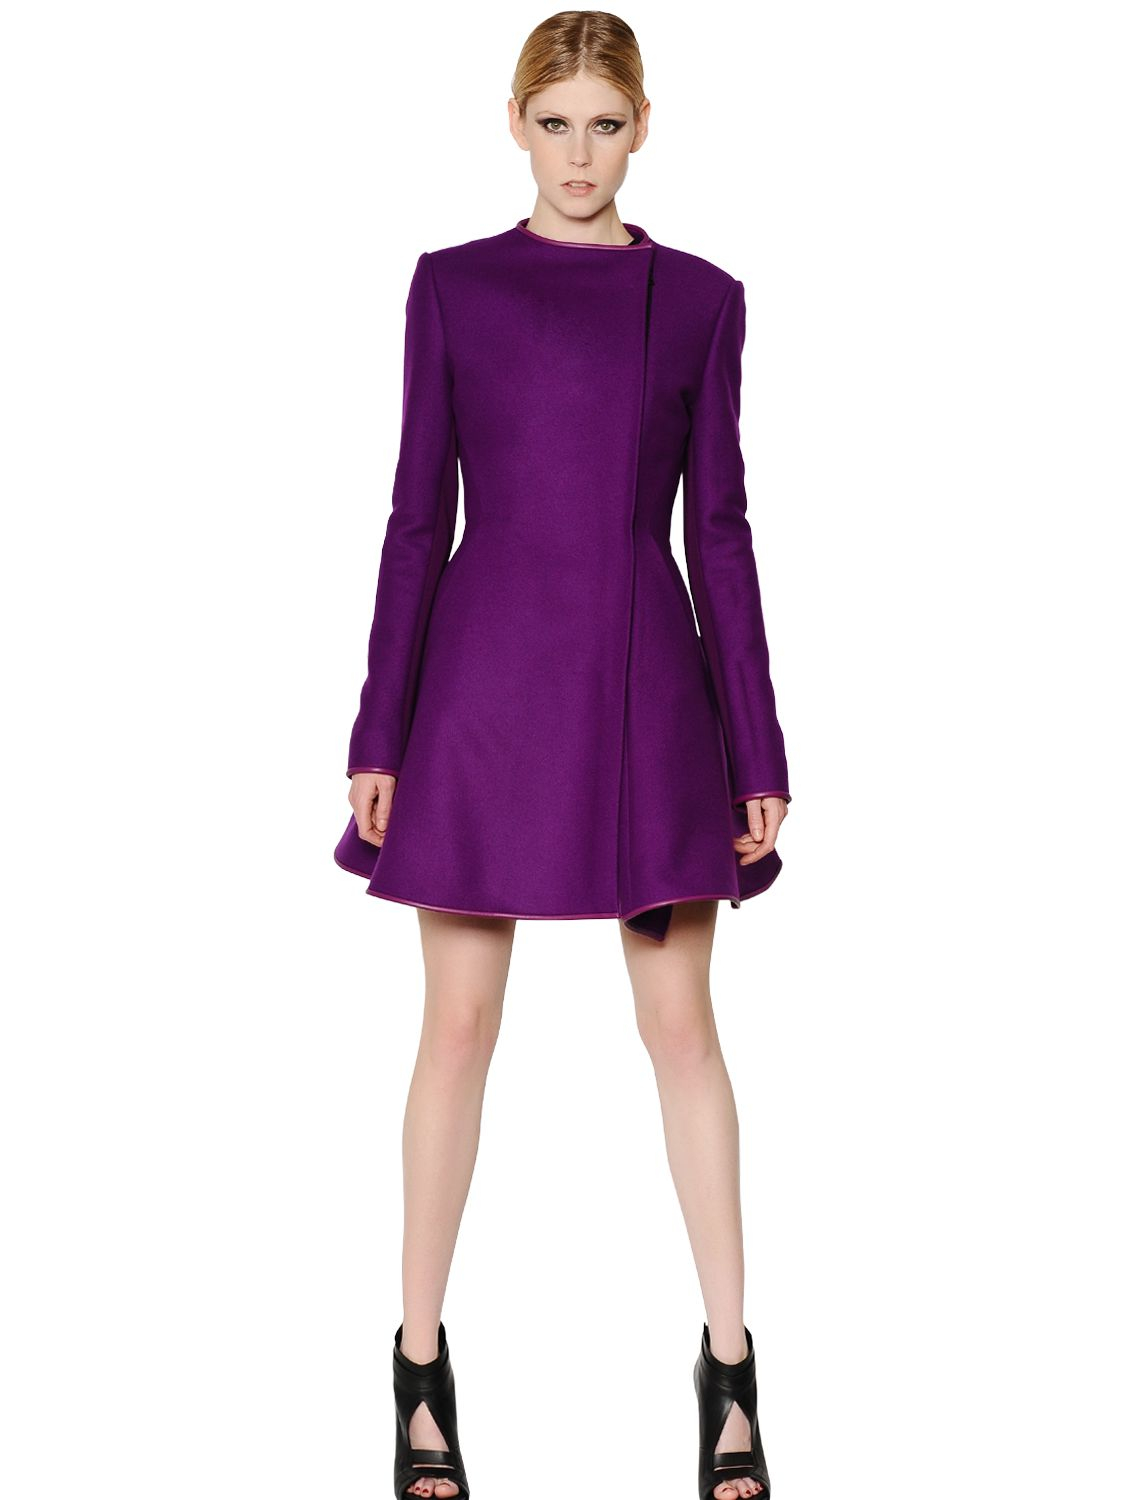 David koma Wool Coat with Nappa Leather Trim in Purple | Lyst